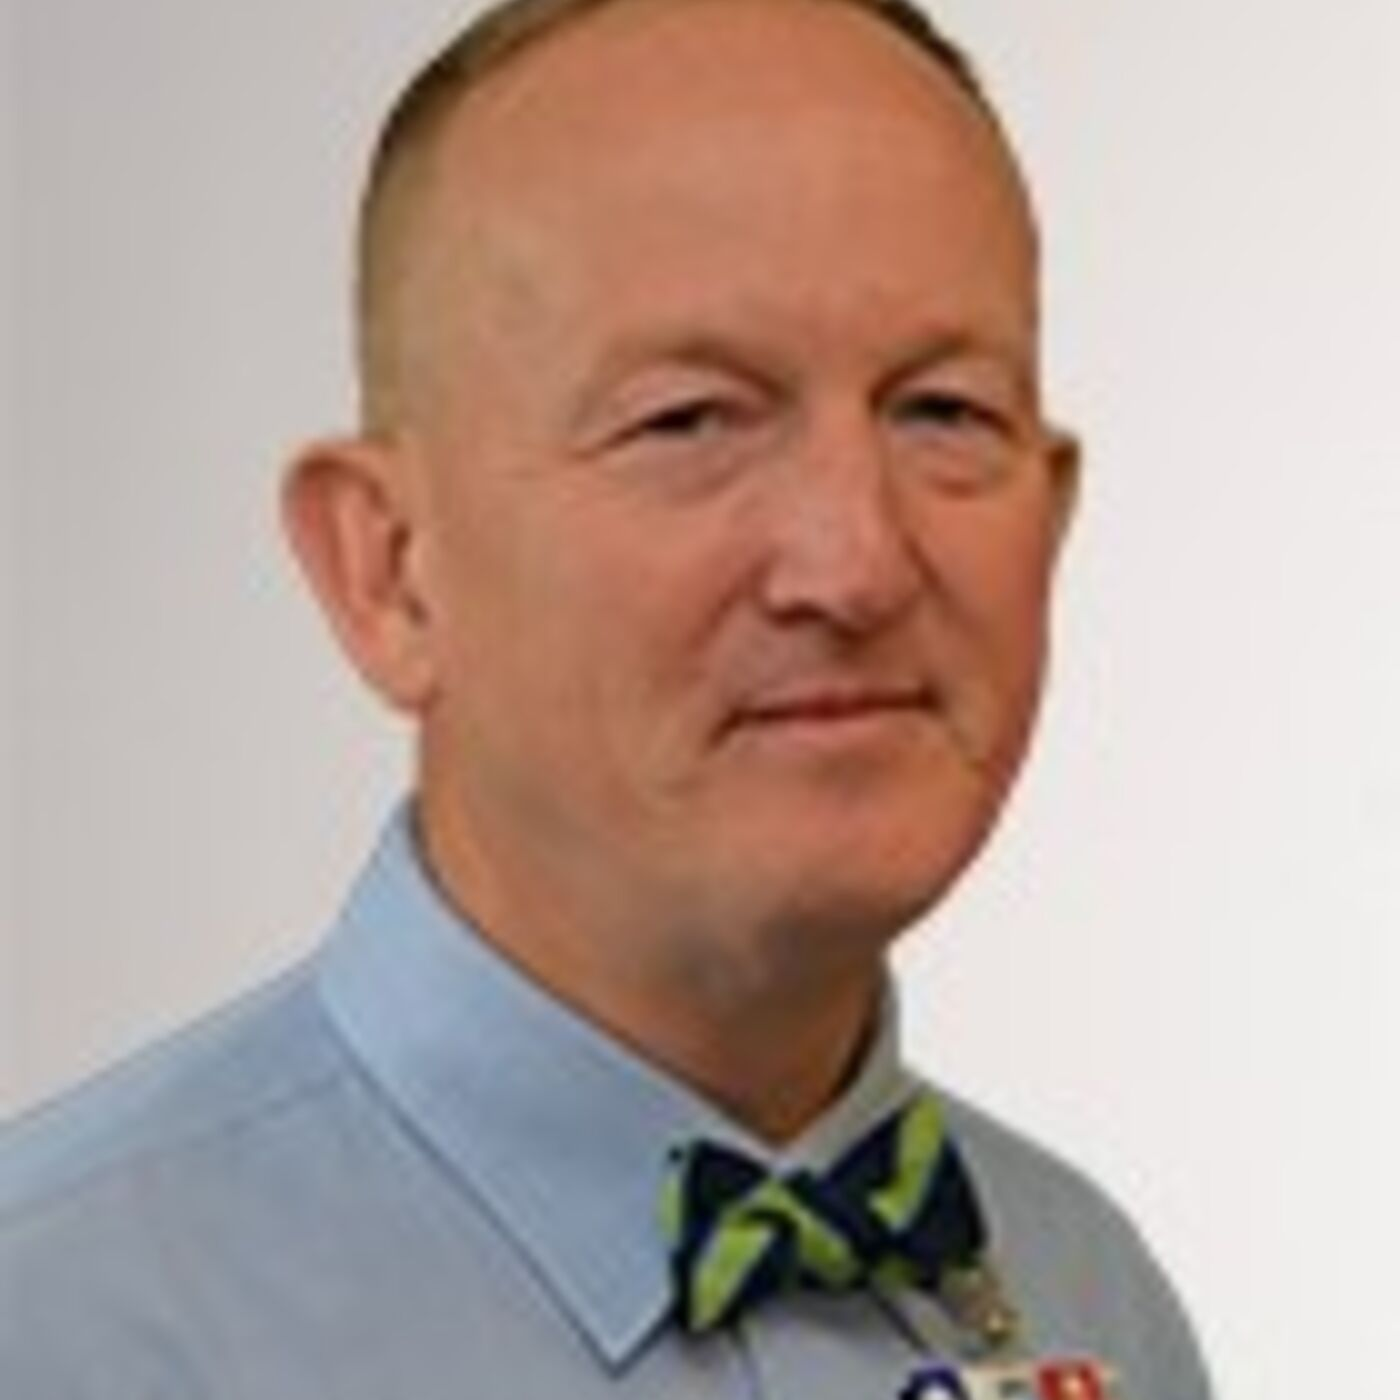 Palliative Care and Advocacy with Andrew Coates, MD, FACP